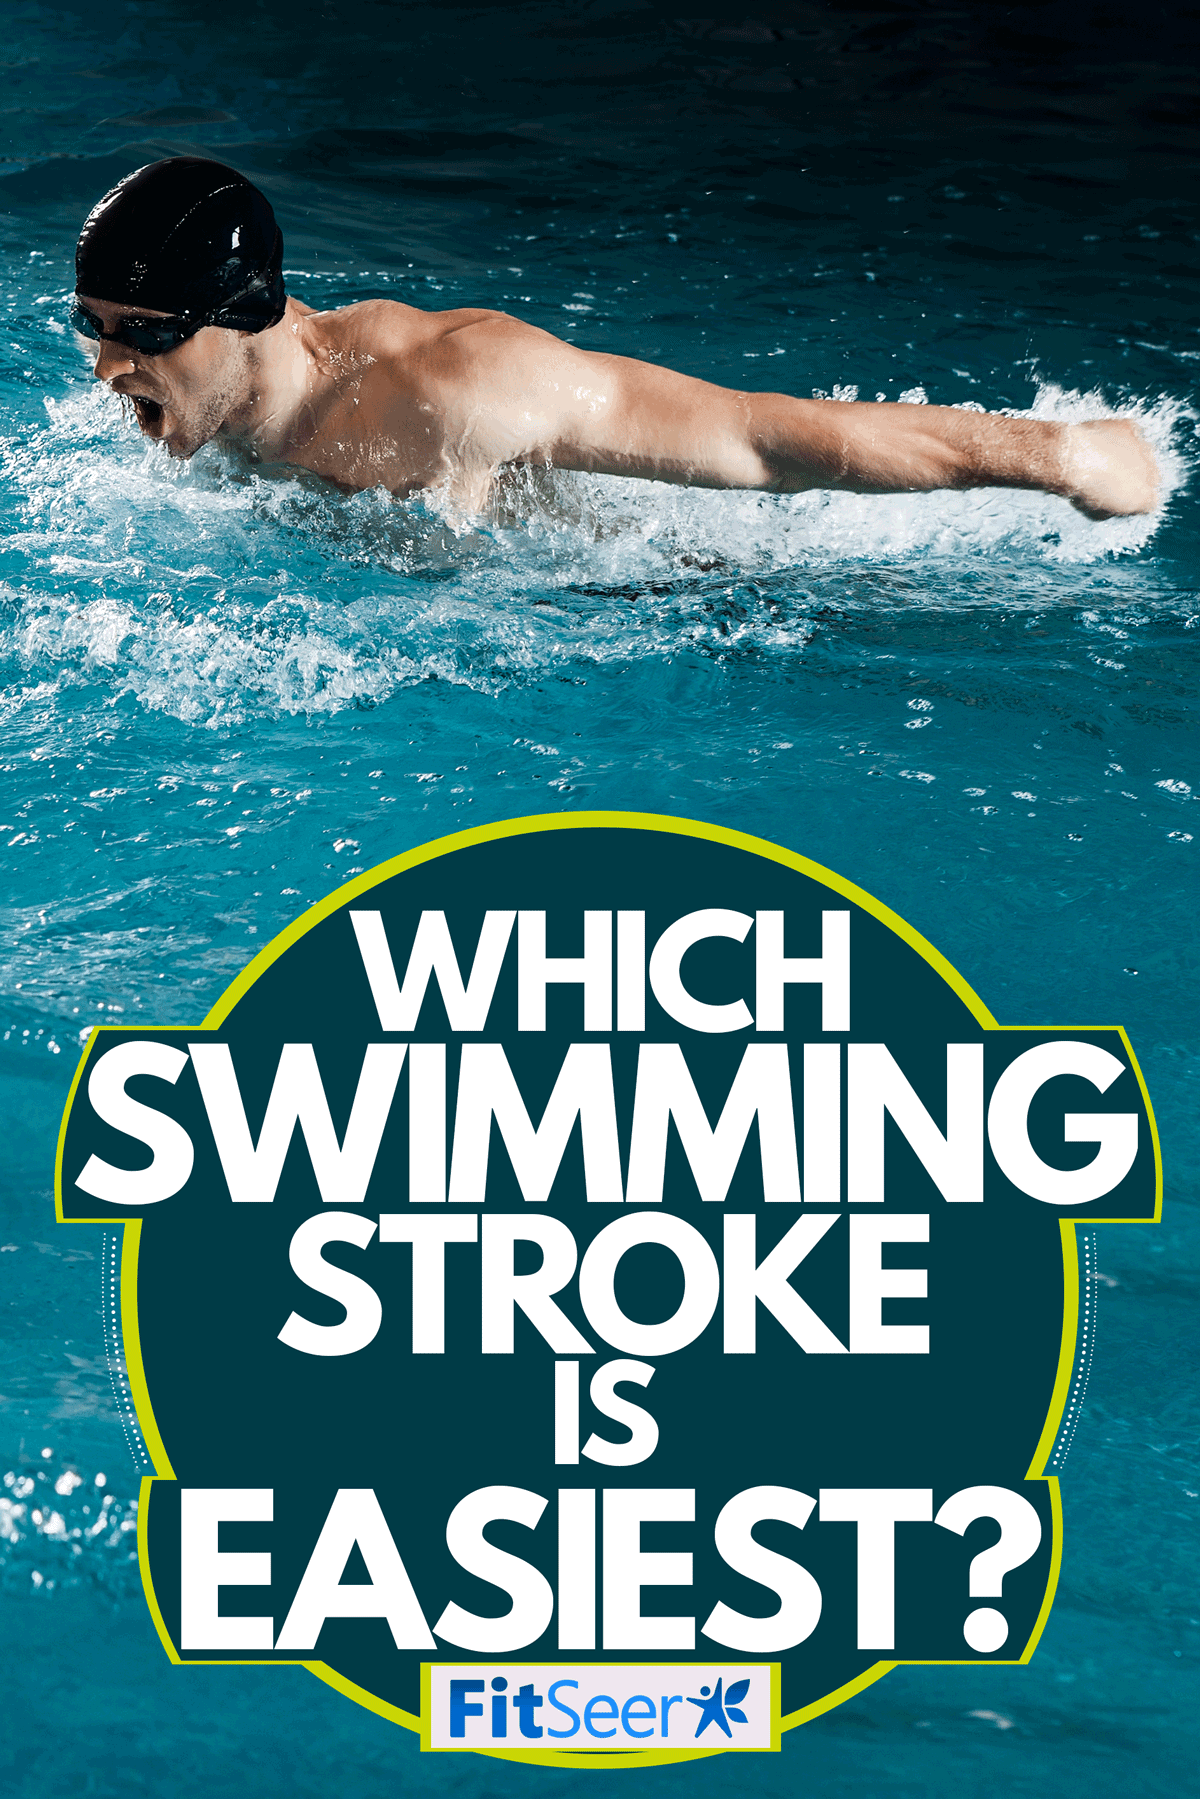 A pro swimmer doing a butterfly stroke on an Olympic swimming pool, Which Swimming Stroke Is Easiest?